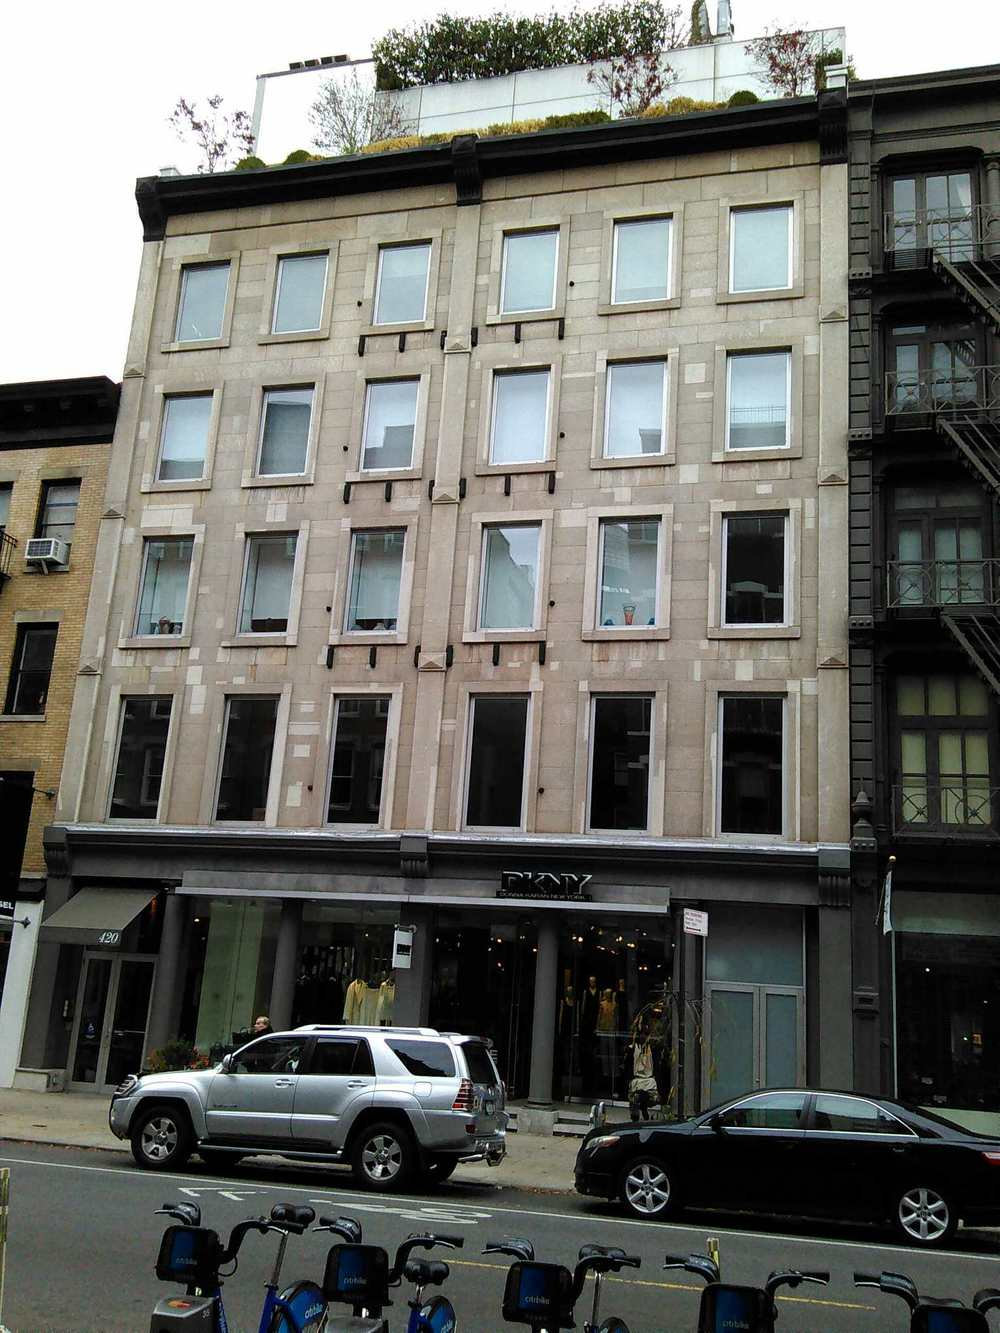 420 West Broadway, the first big time SoHo gallery building, on Thanksgiving 2015.